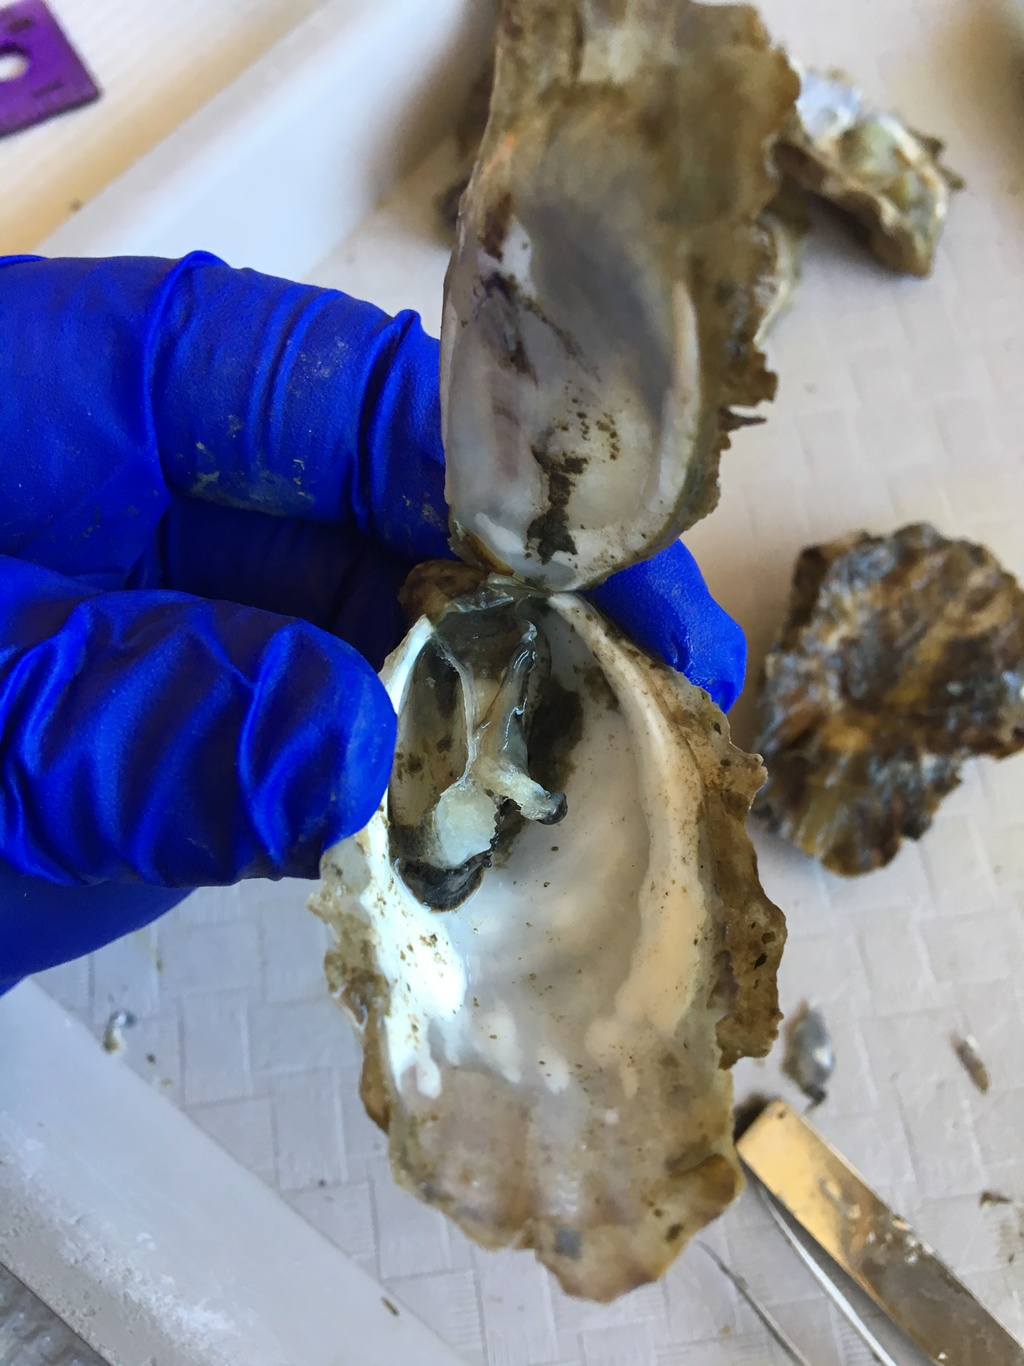 Dead Pacific oyster sampled